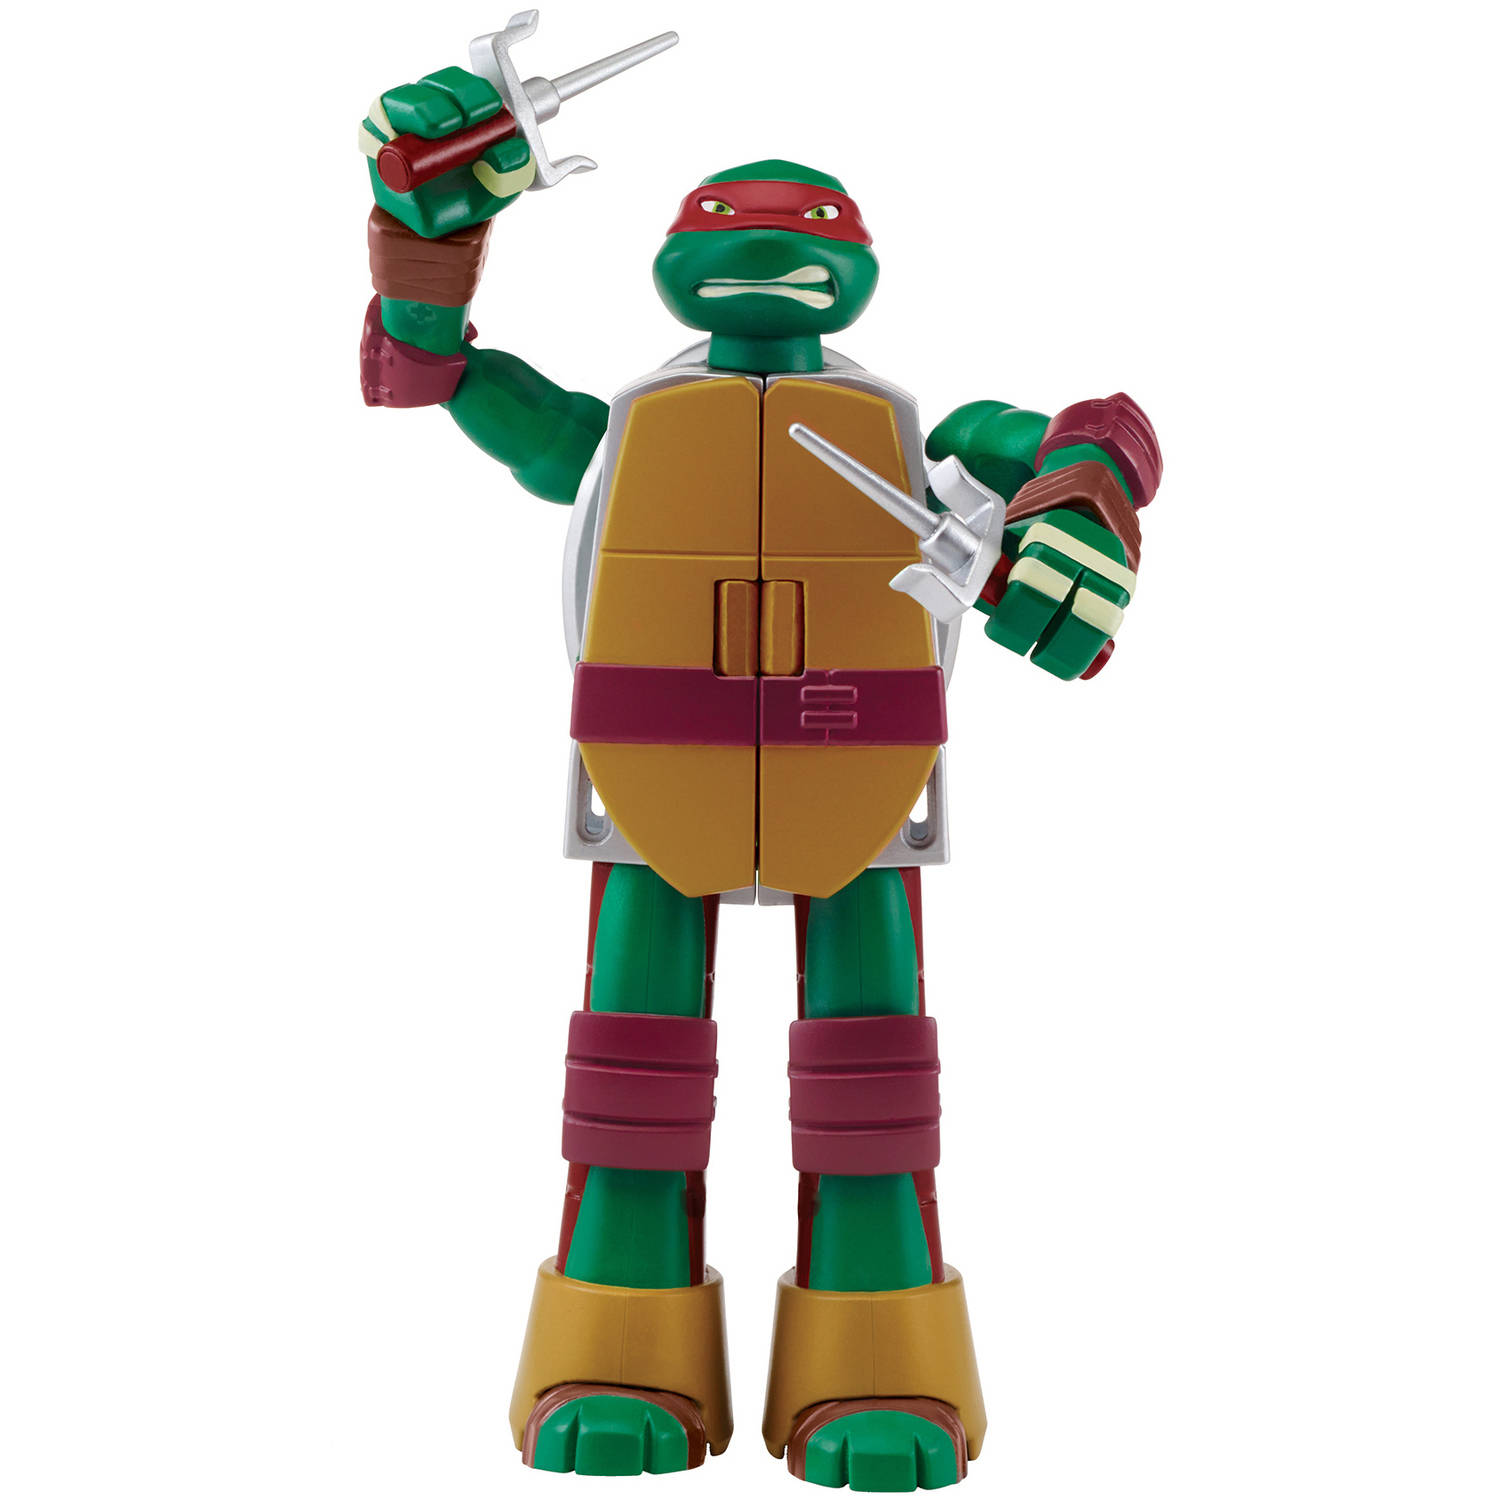 Teenage Mutant Ninja Turtles Mutations Figure to Weapon, Raphael to Sais